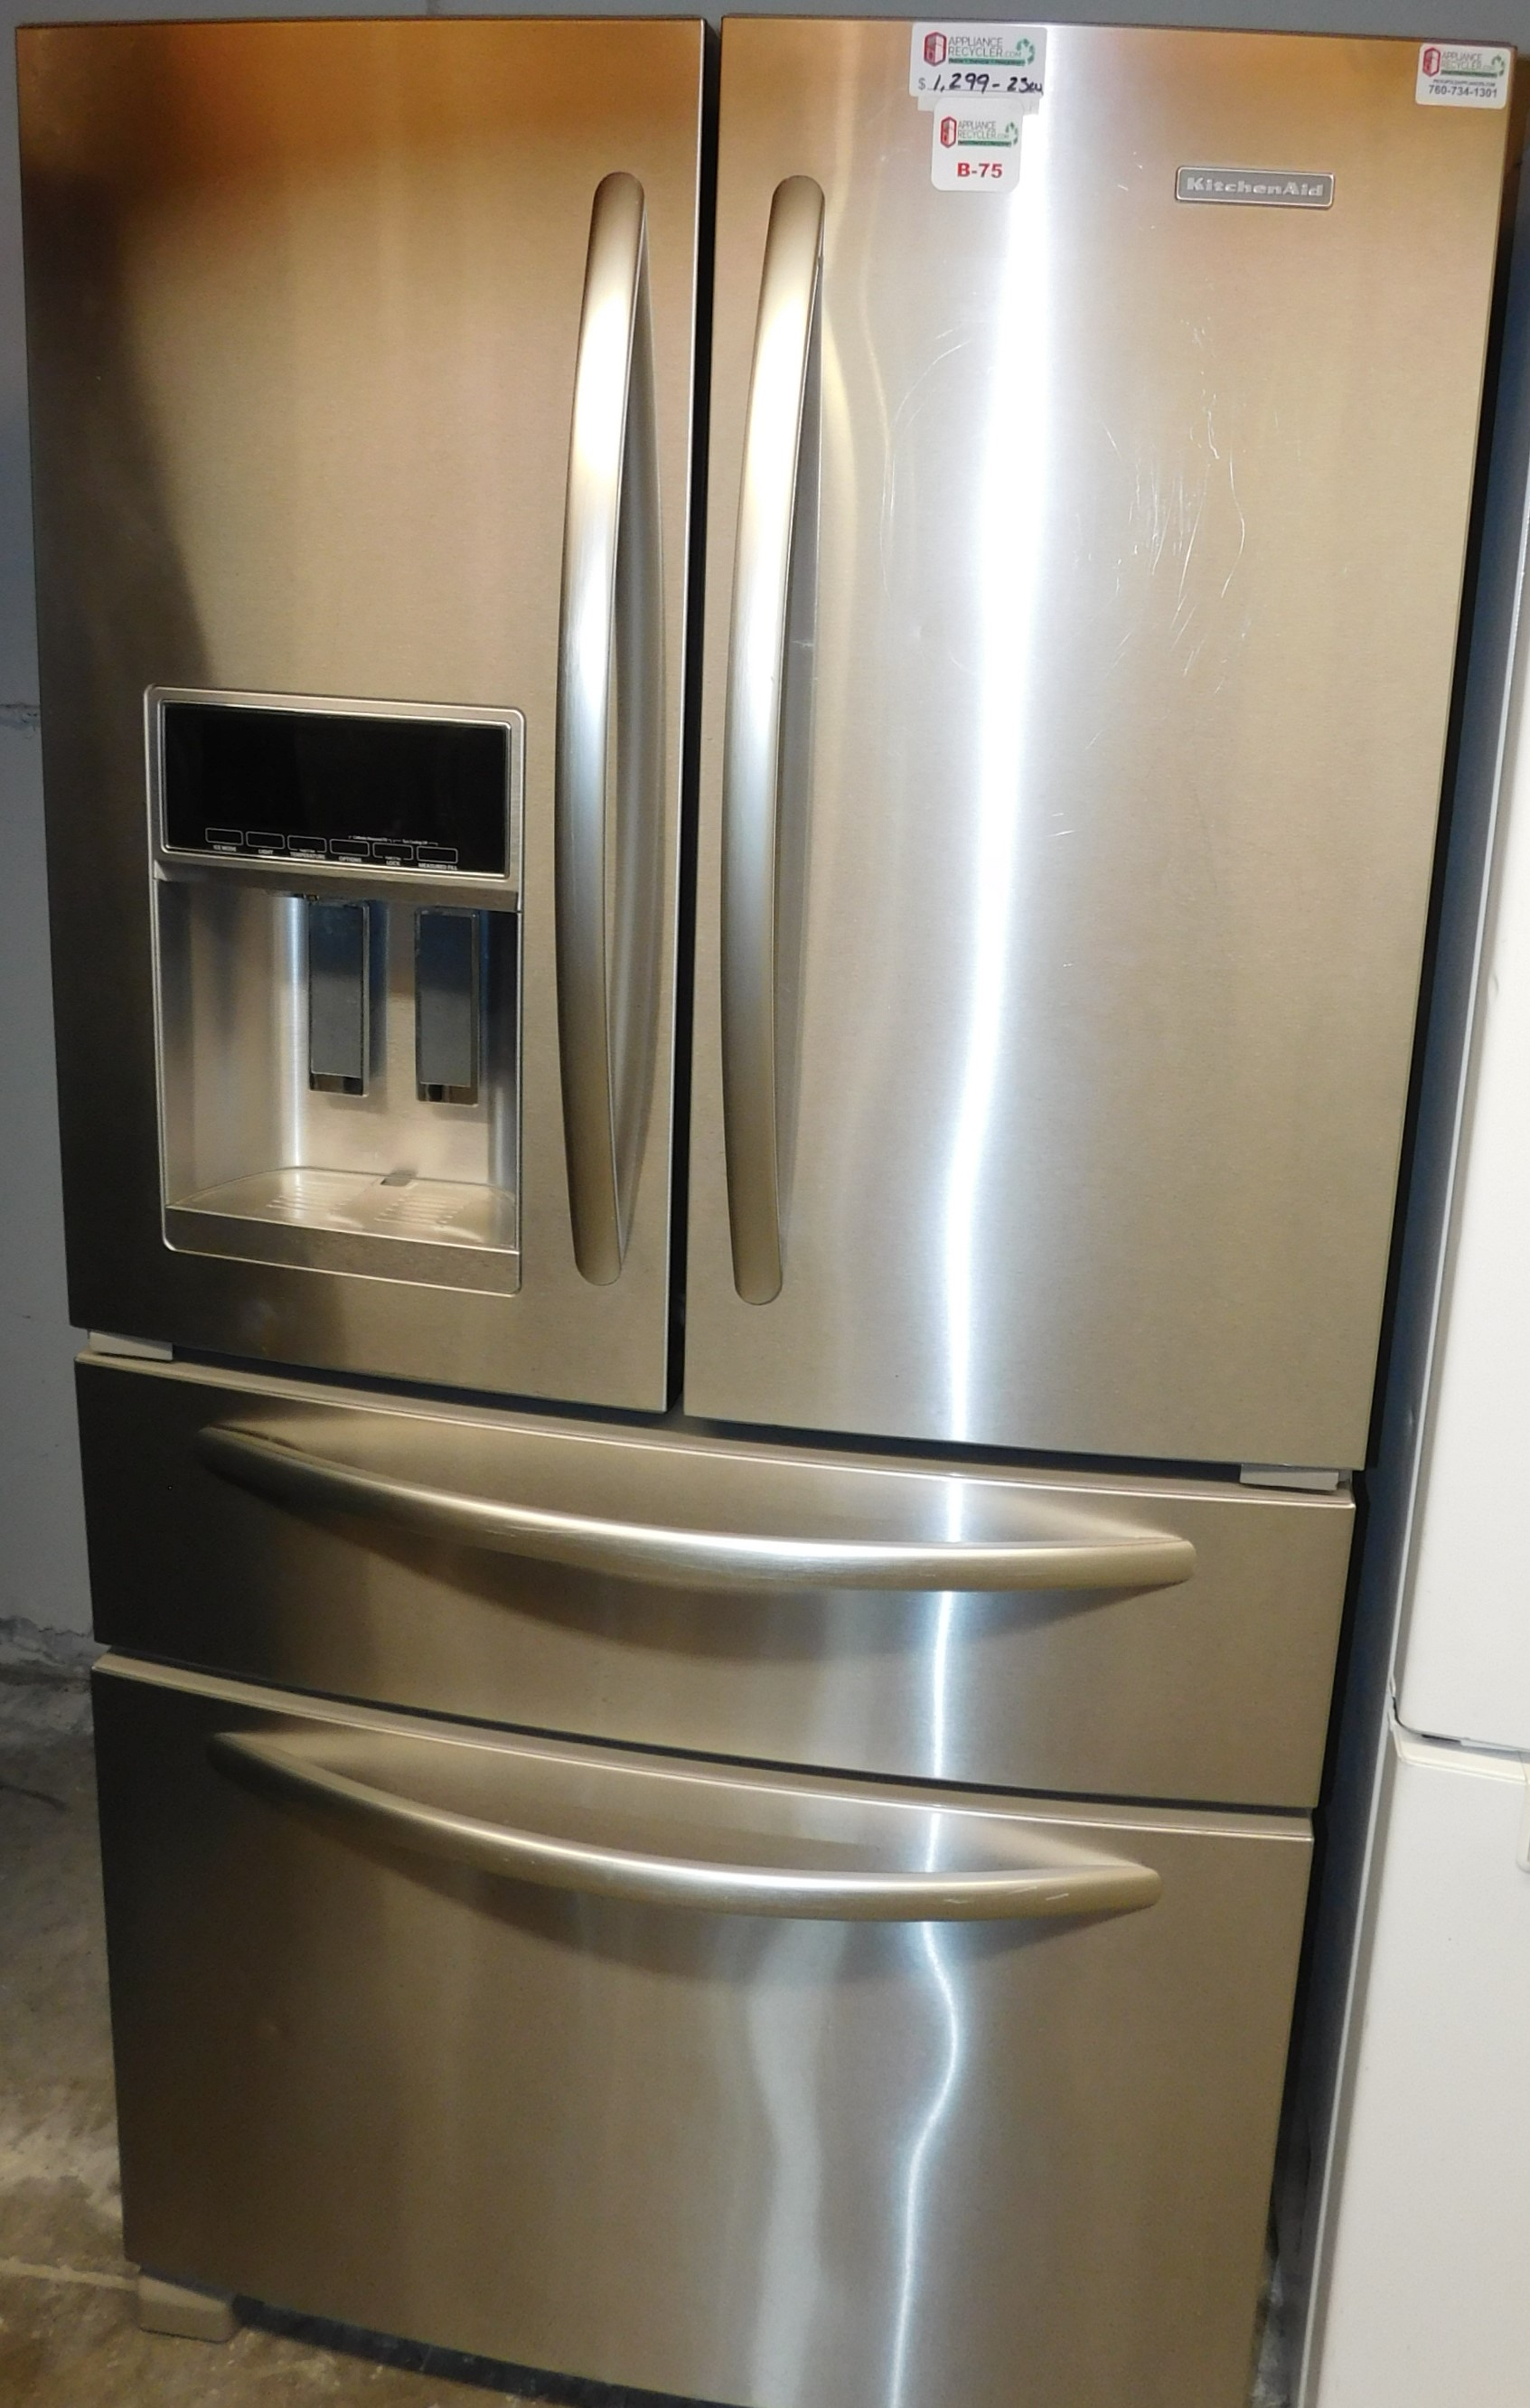 25 CU. FT. KITCHENAID FRENCH DOOR SIDE-BY-SIDE STAINLESS STEEL REFRIGERATOR  B-75